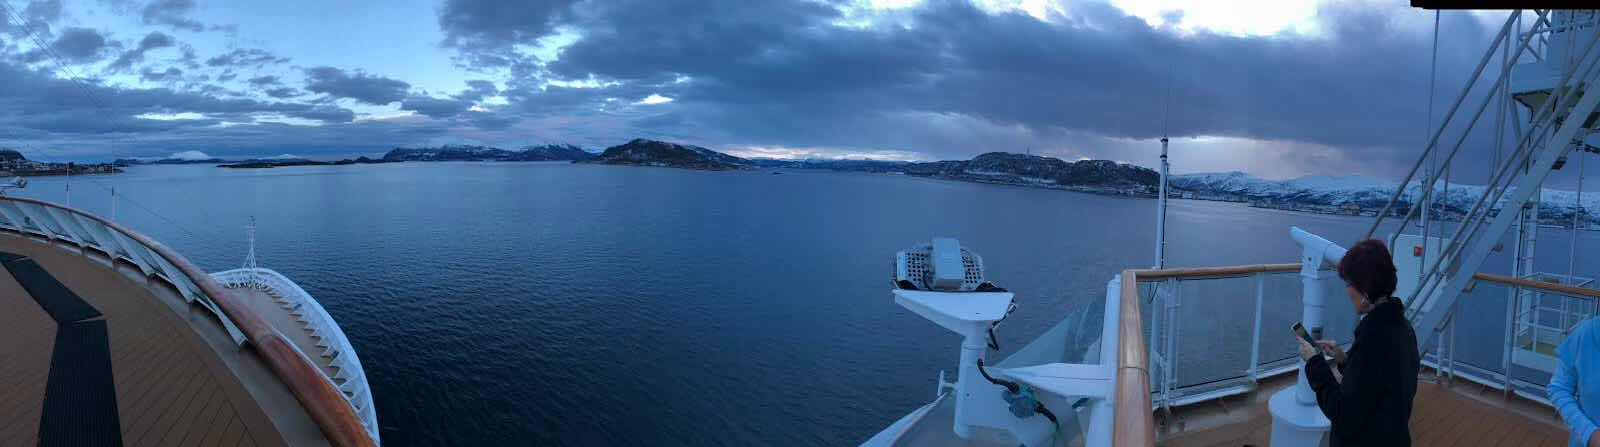 Scenic beauty along the Norwegian coastline aboard the Viking Sky (Source: Palmia Observatory)